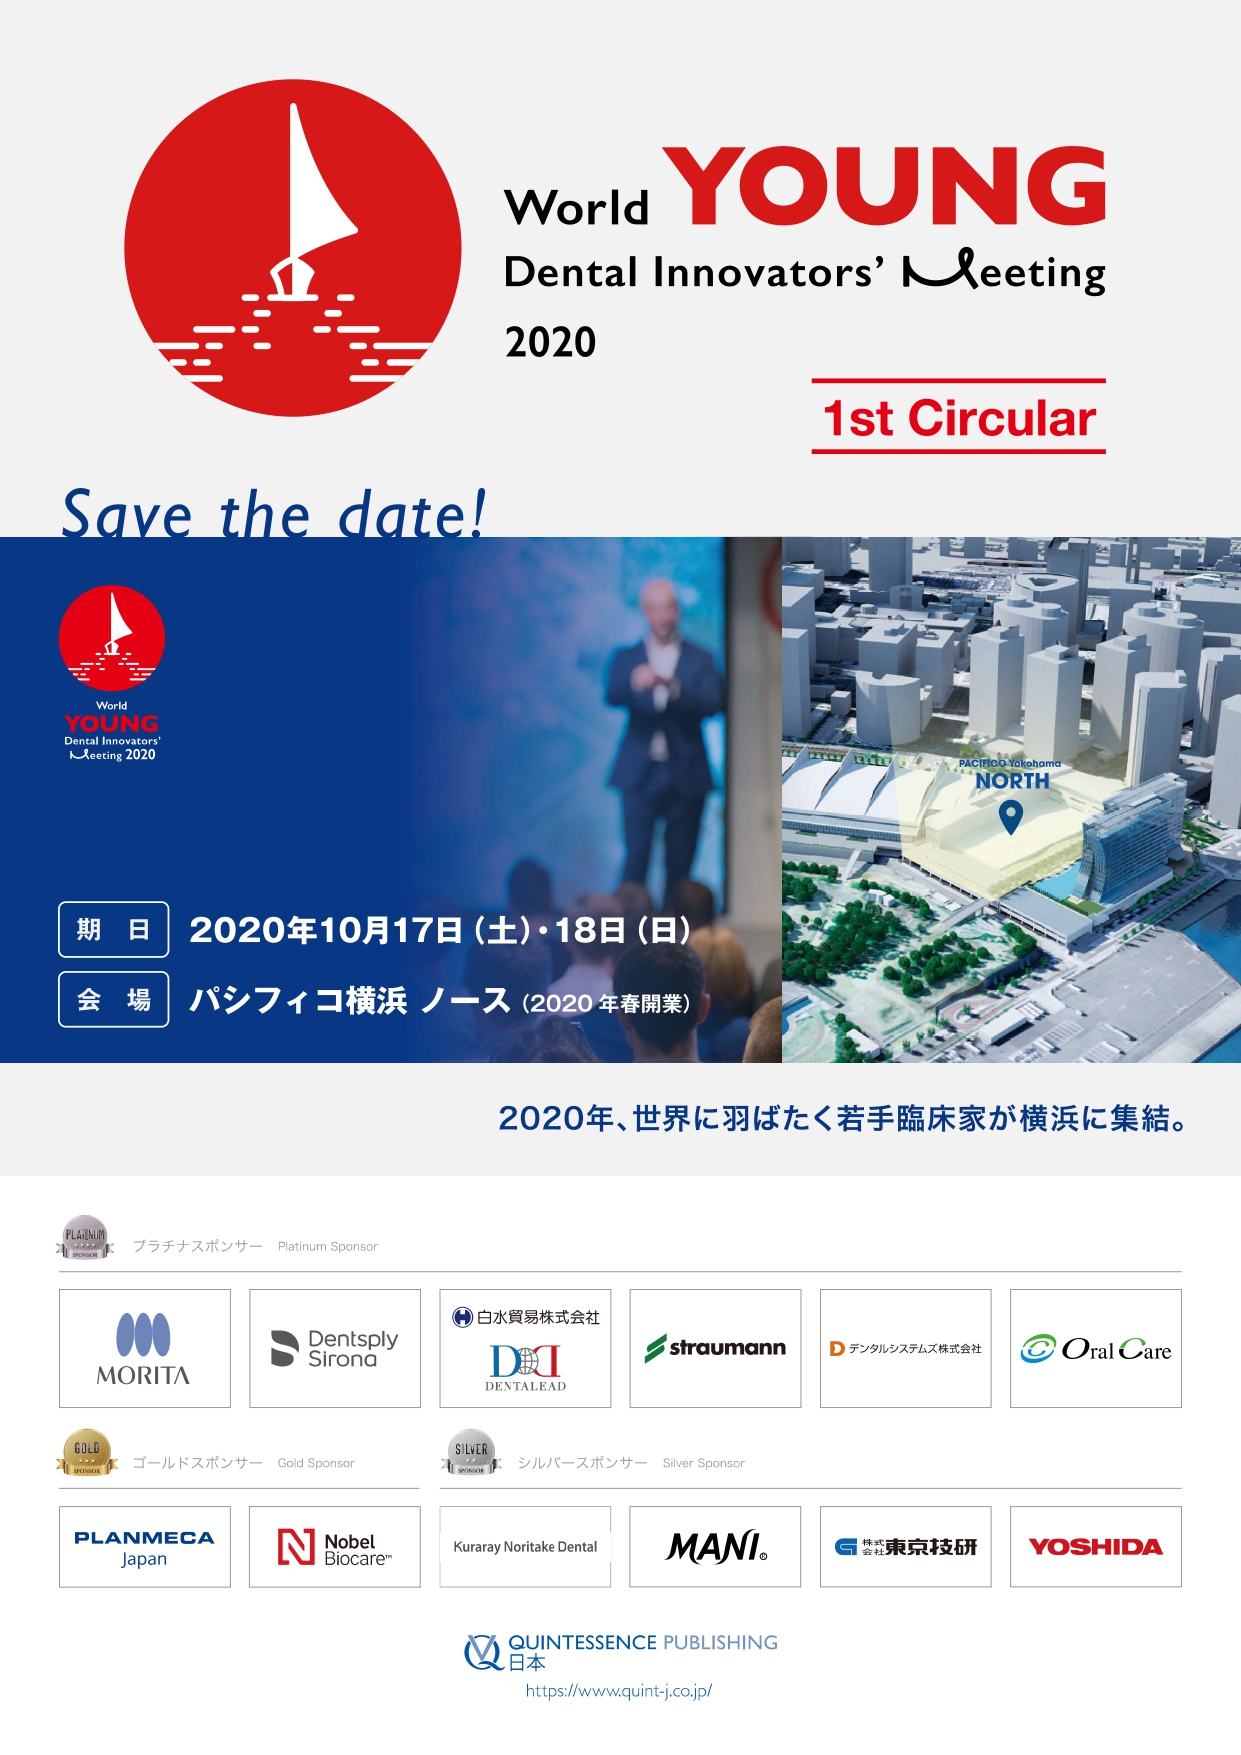 World Young Dental Innovators' Meeting 2020